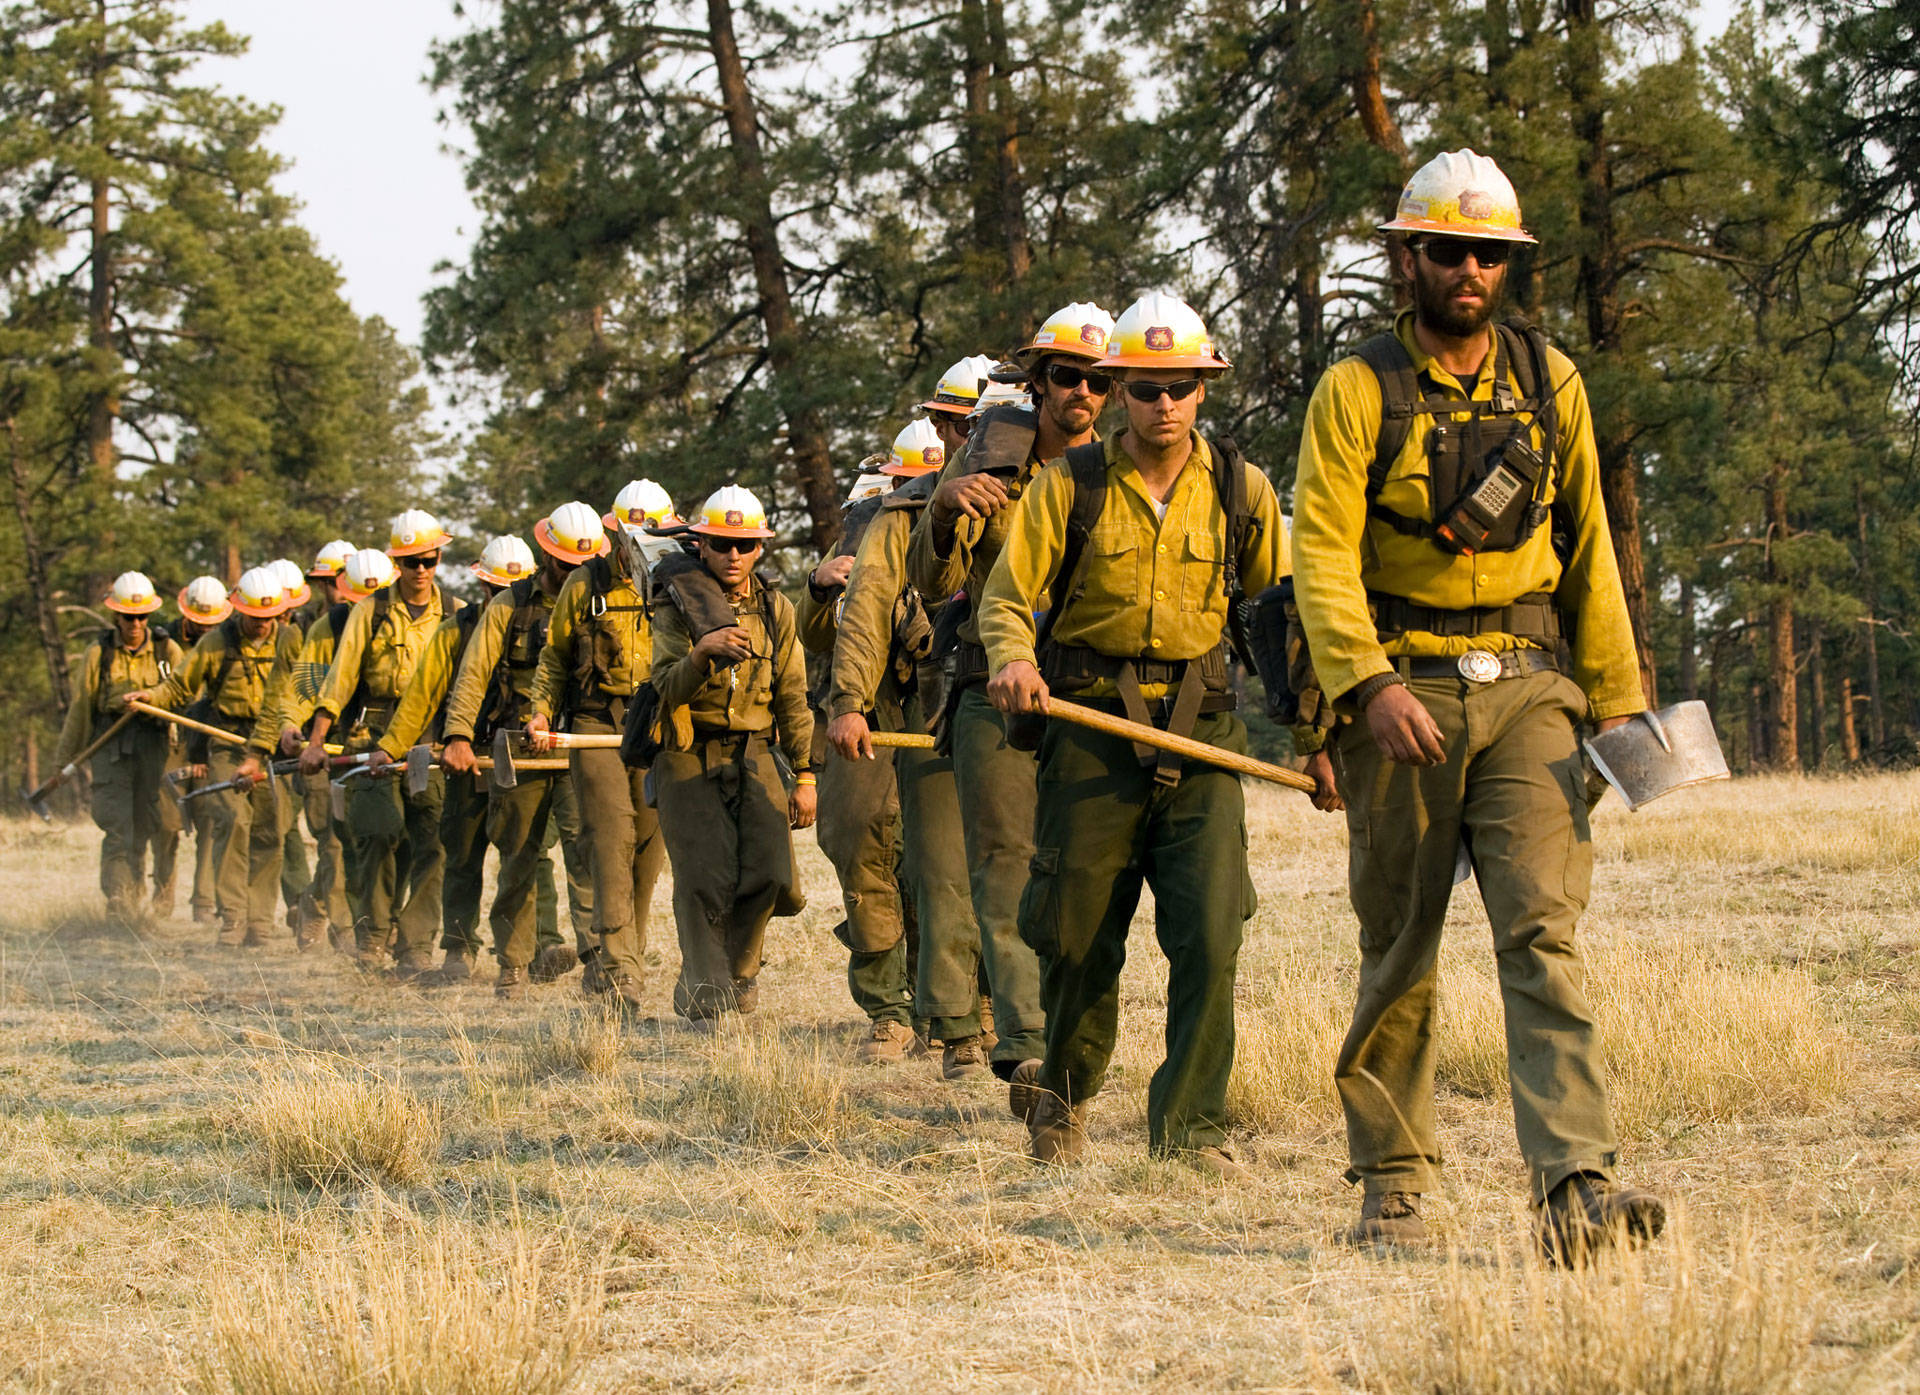 Wildland firefighters, like this crew heading into New Mexico's Gila National Forest, in 2012, are equipped and operate differently from urban firefighters. USFS Gila National Forest, CC BY-SA